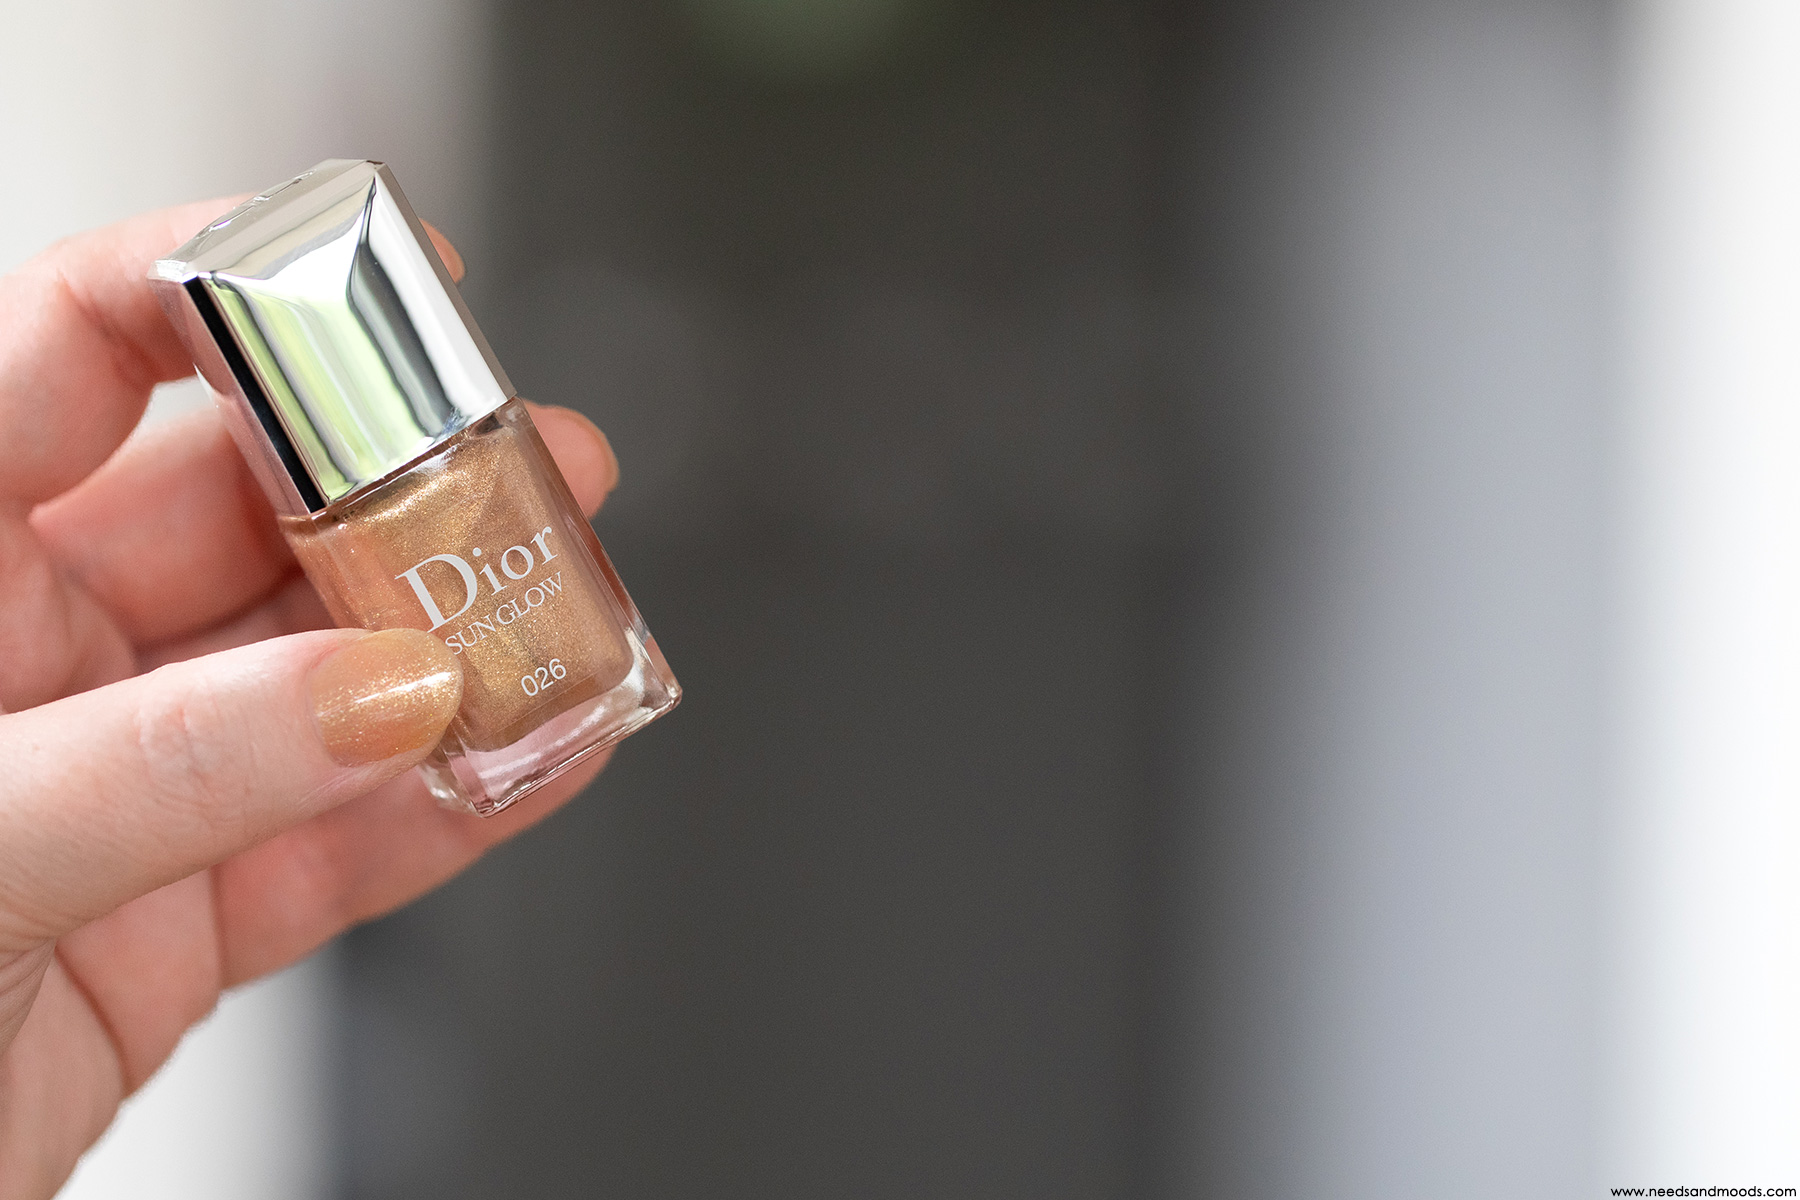 dior vernis ongles sun glow swatch